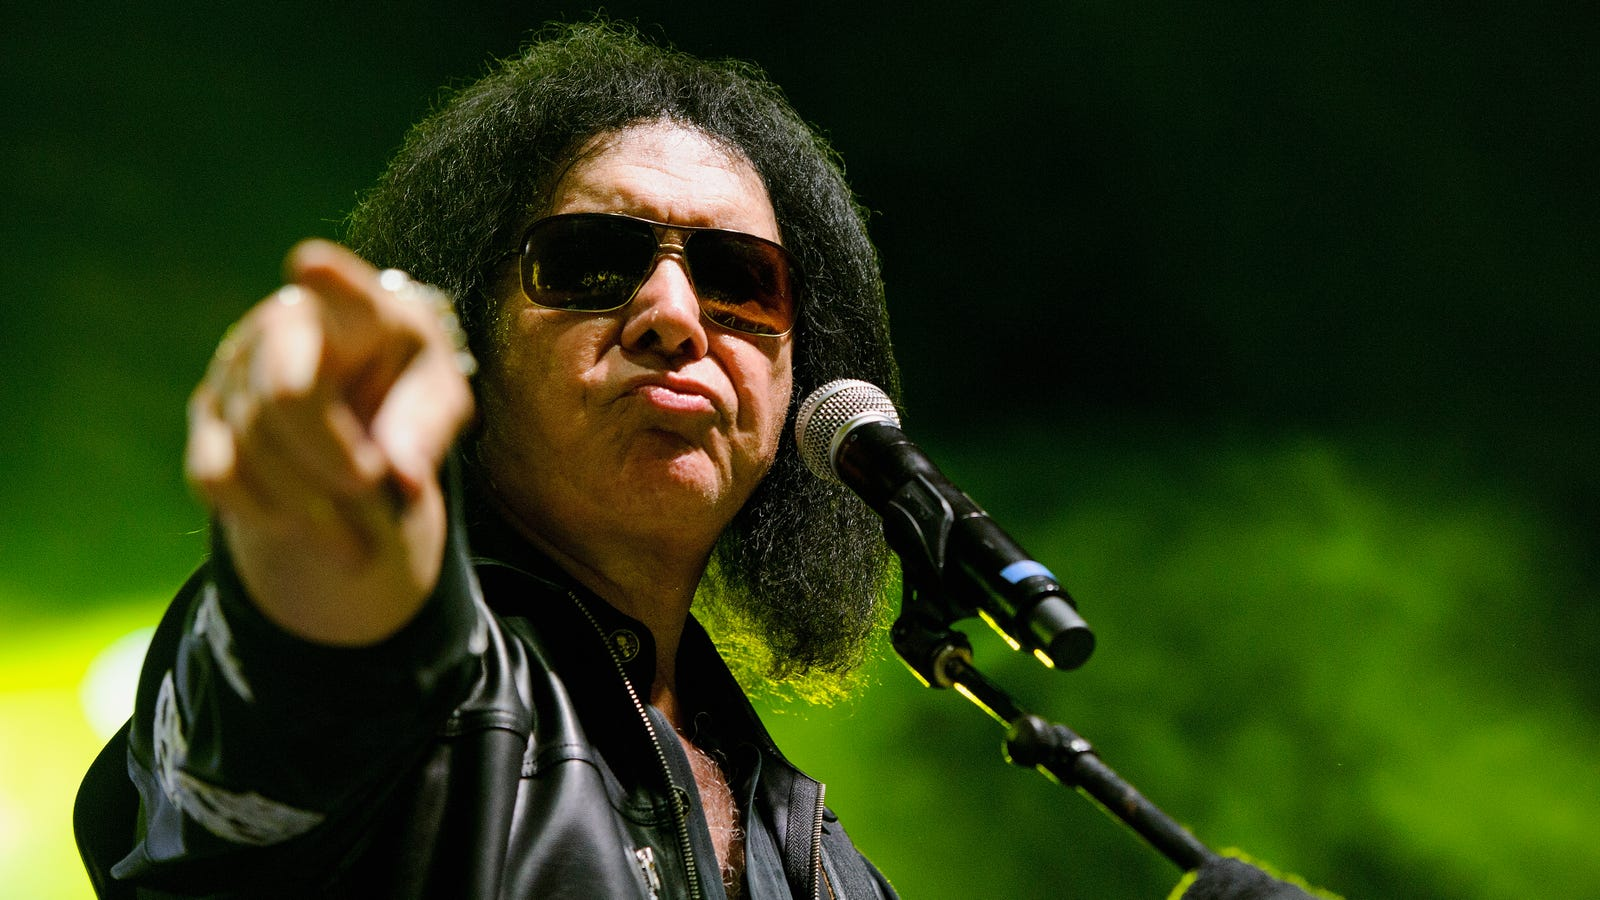 Gene Simmons has been banned for life from Fox News